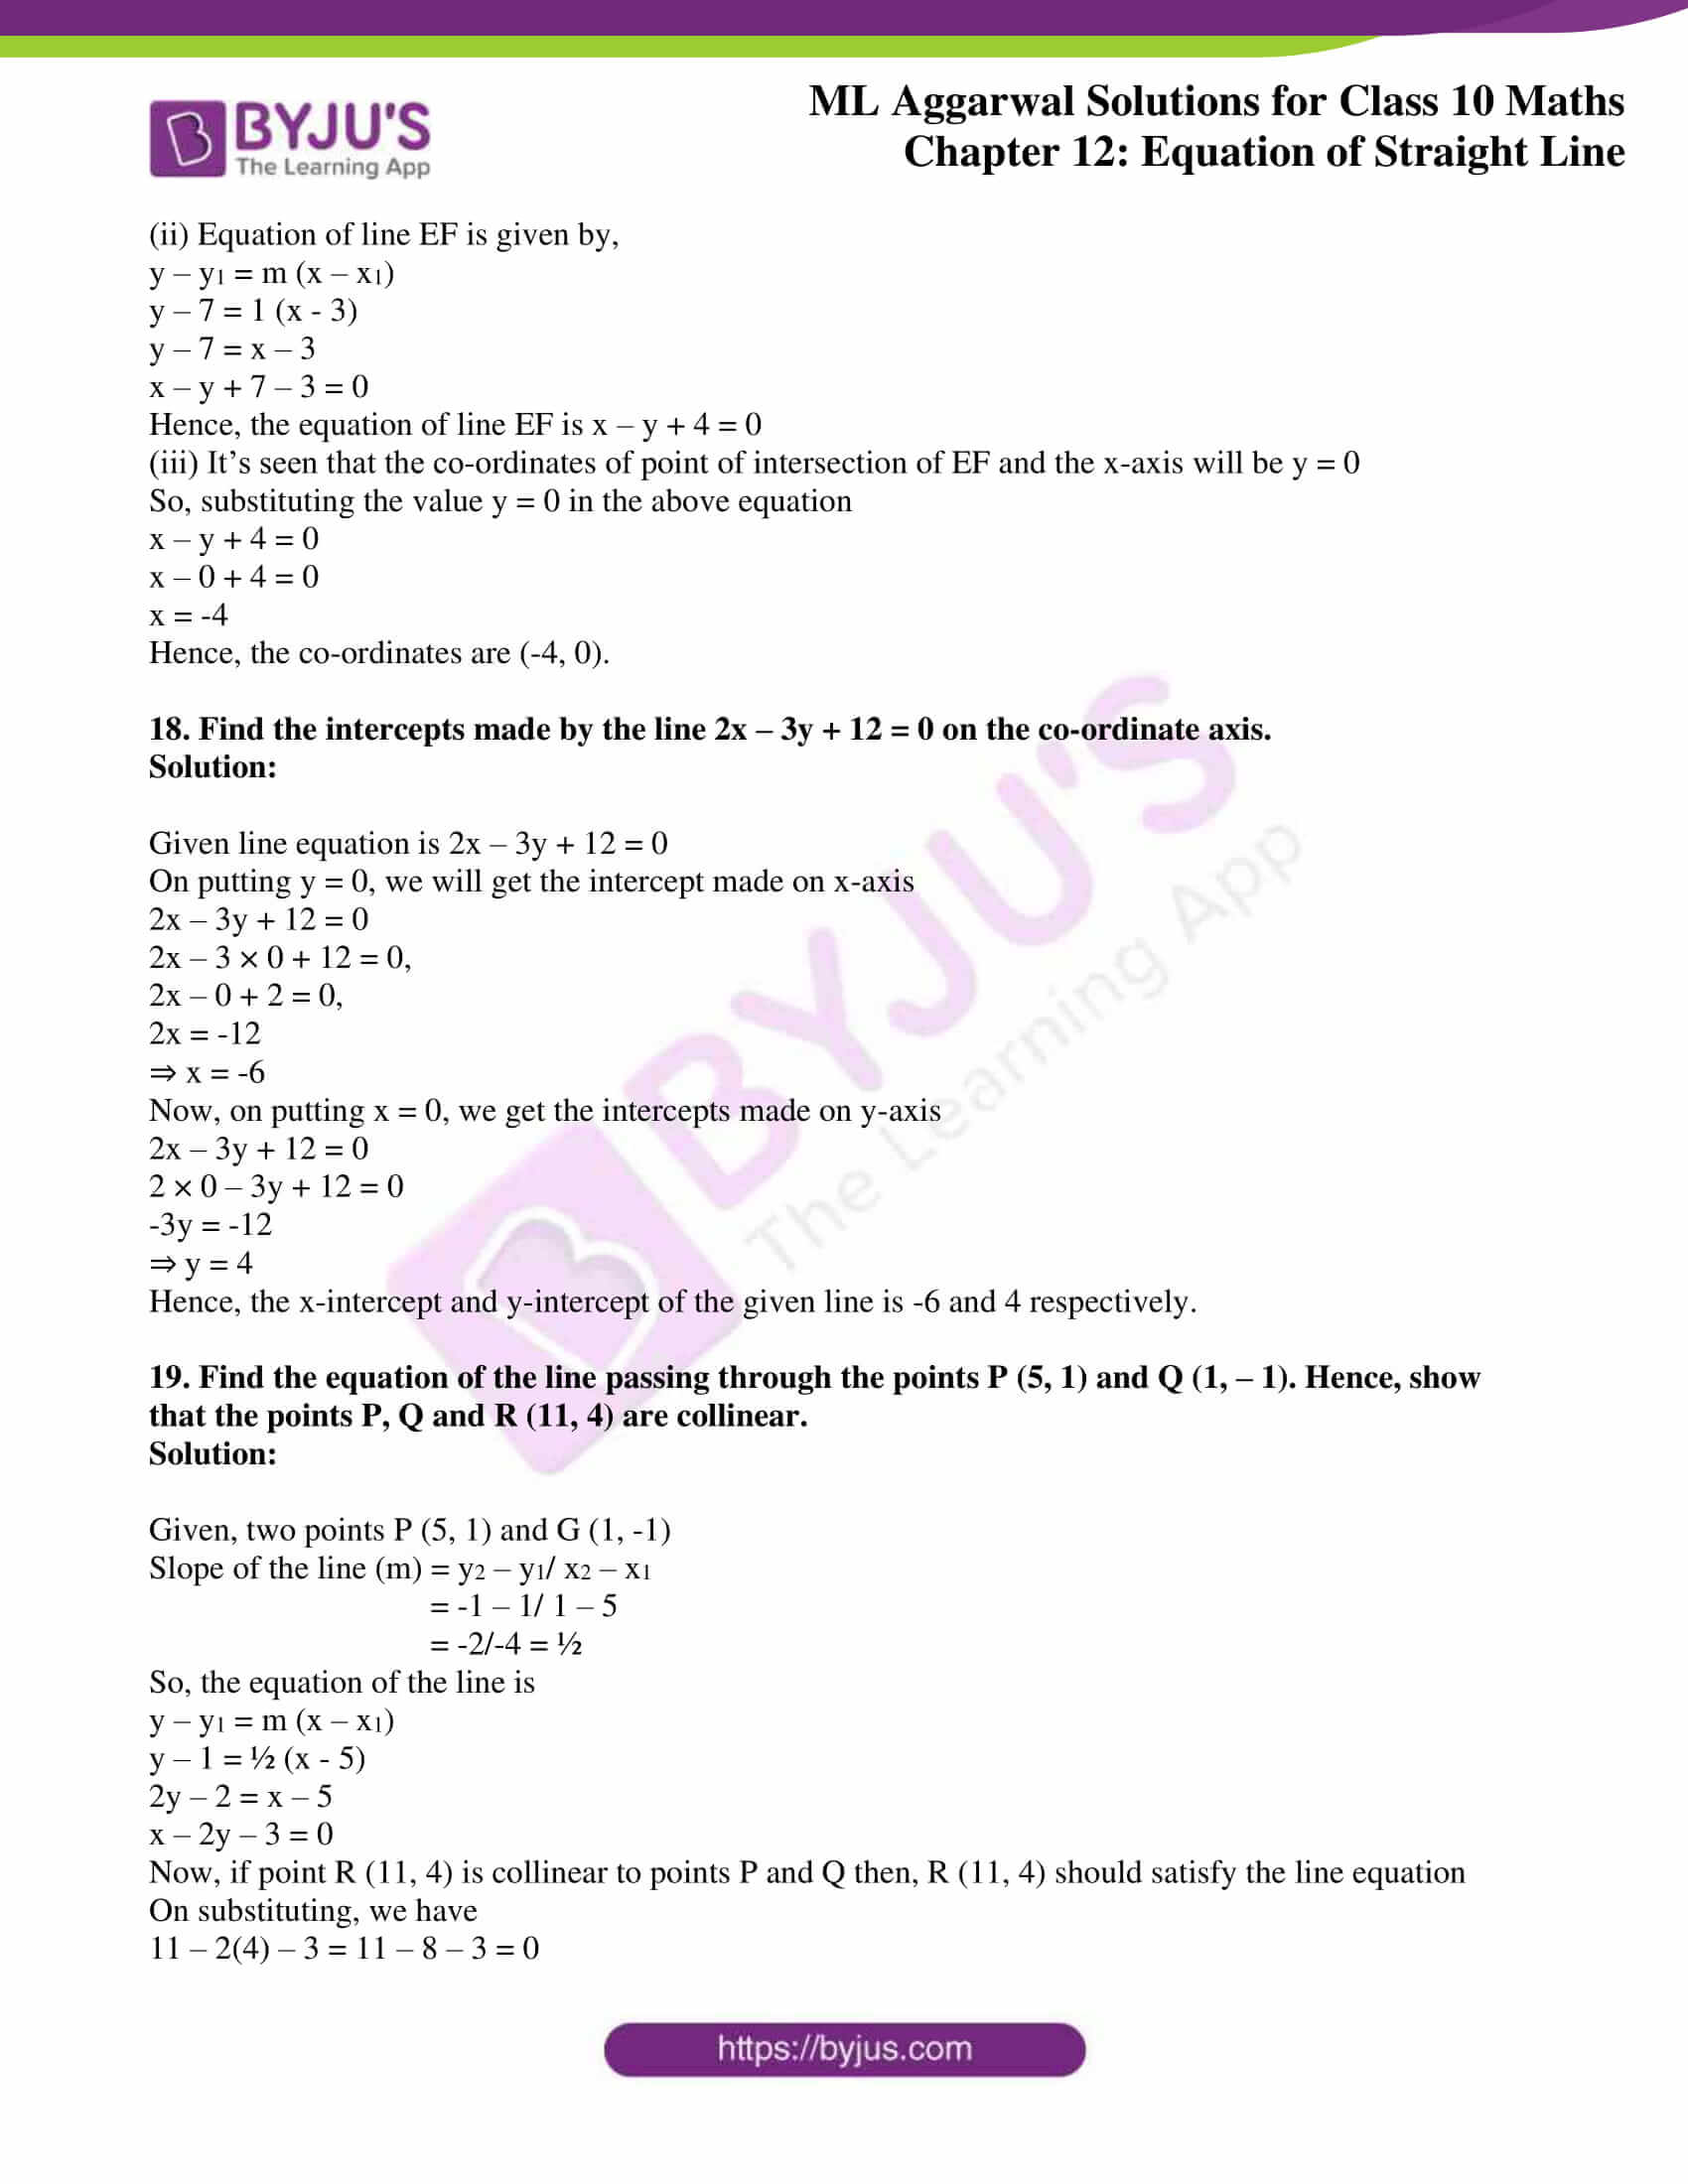 ml aggarwal solutions for class 10 maths chapter 12 07